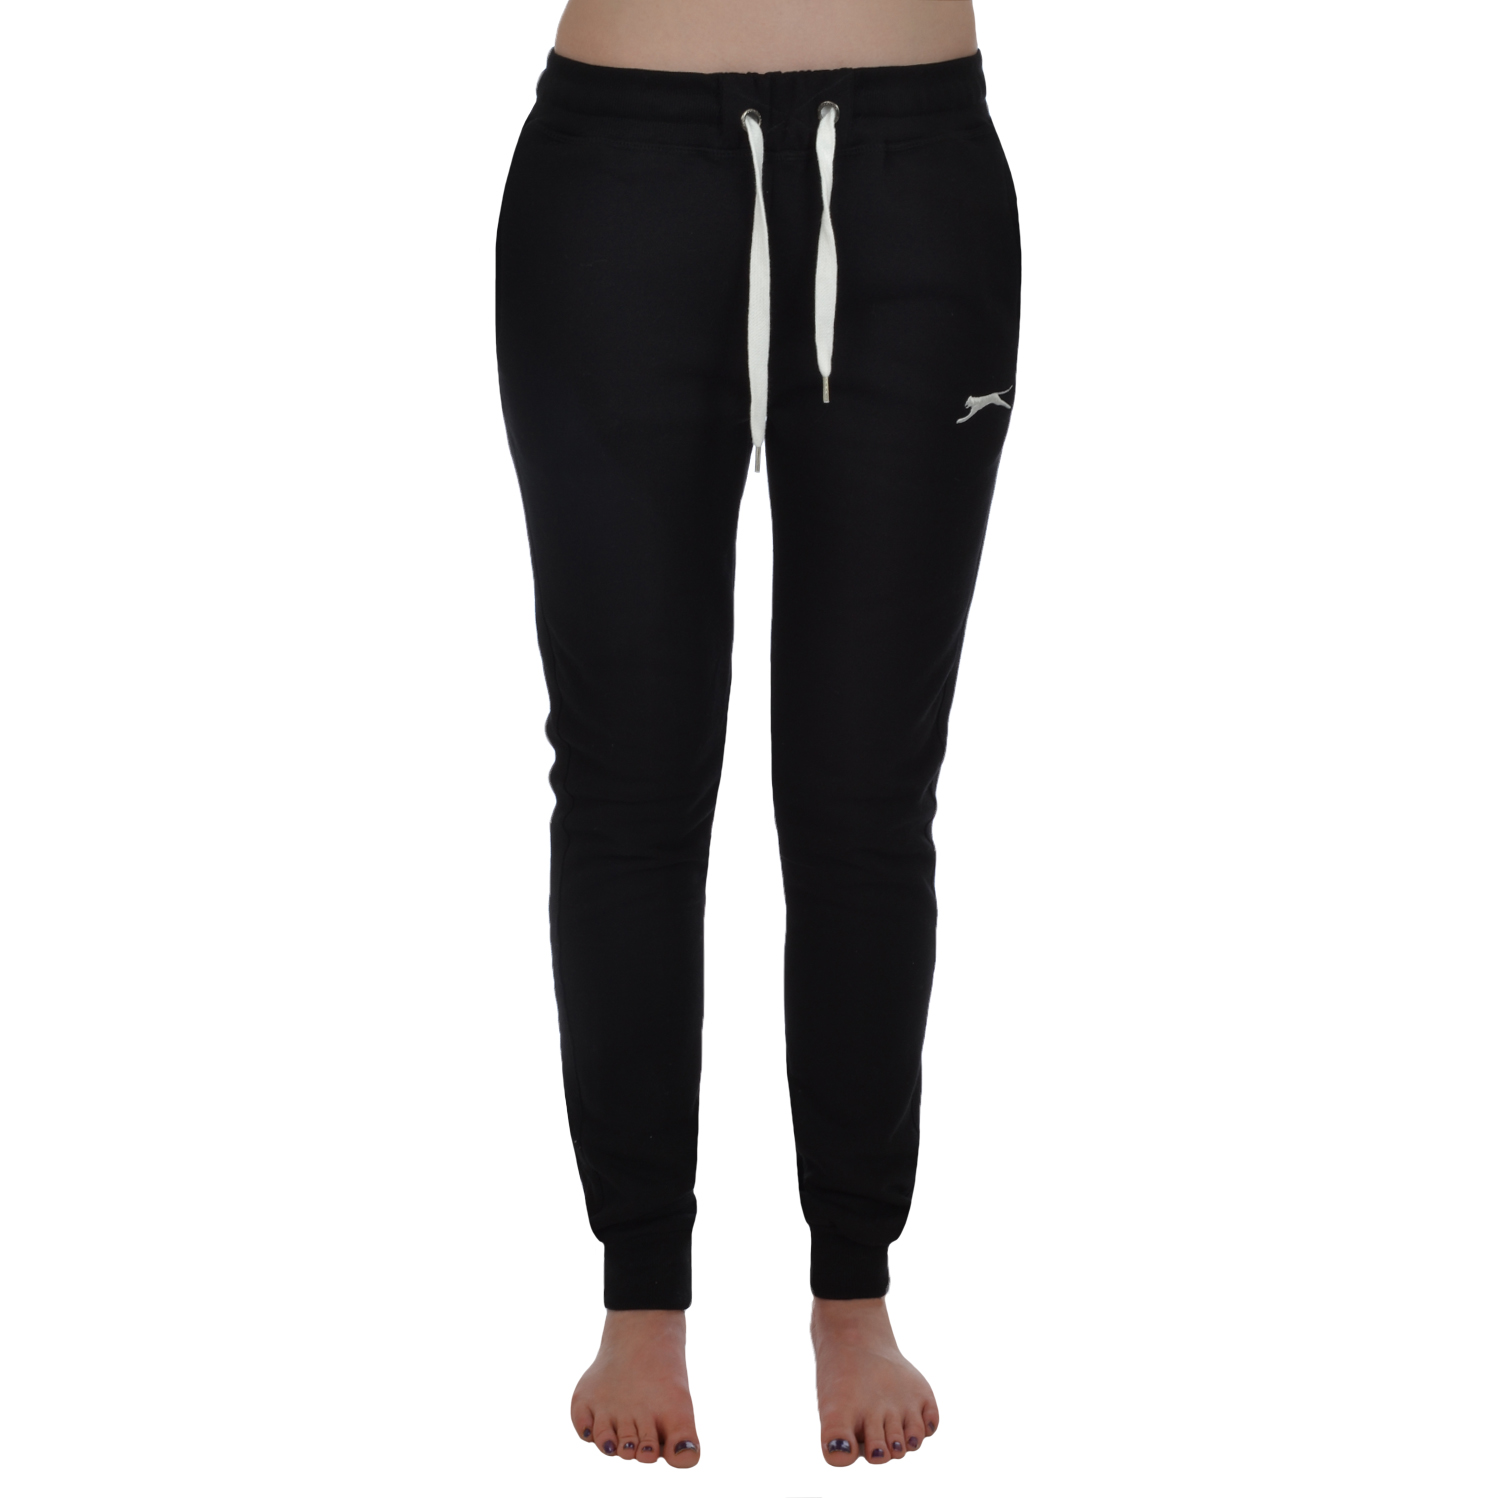 Whether you're running, lifting or relaxing around the house, our women's track pants do it with ease. Match with a crop top, sports bra or hoodie, and swap for shorts or cropped leggings when the weather gets warmer. With our sweatpants available in a variety .